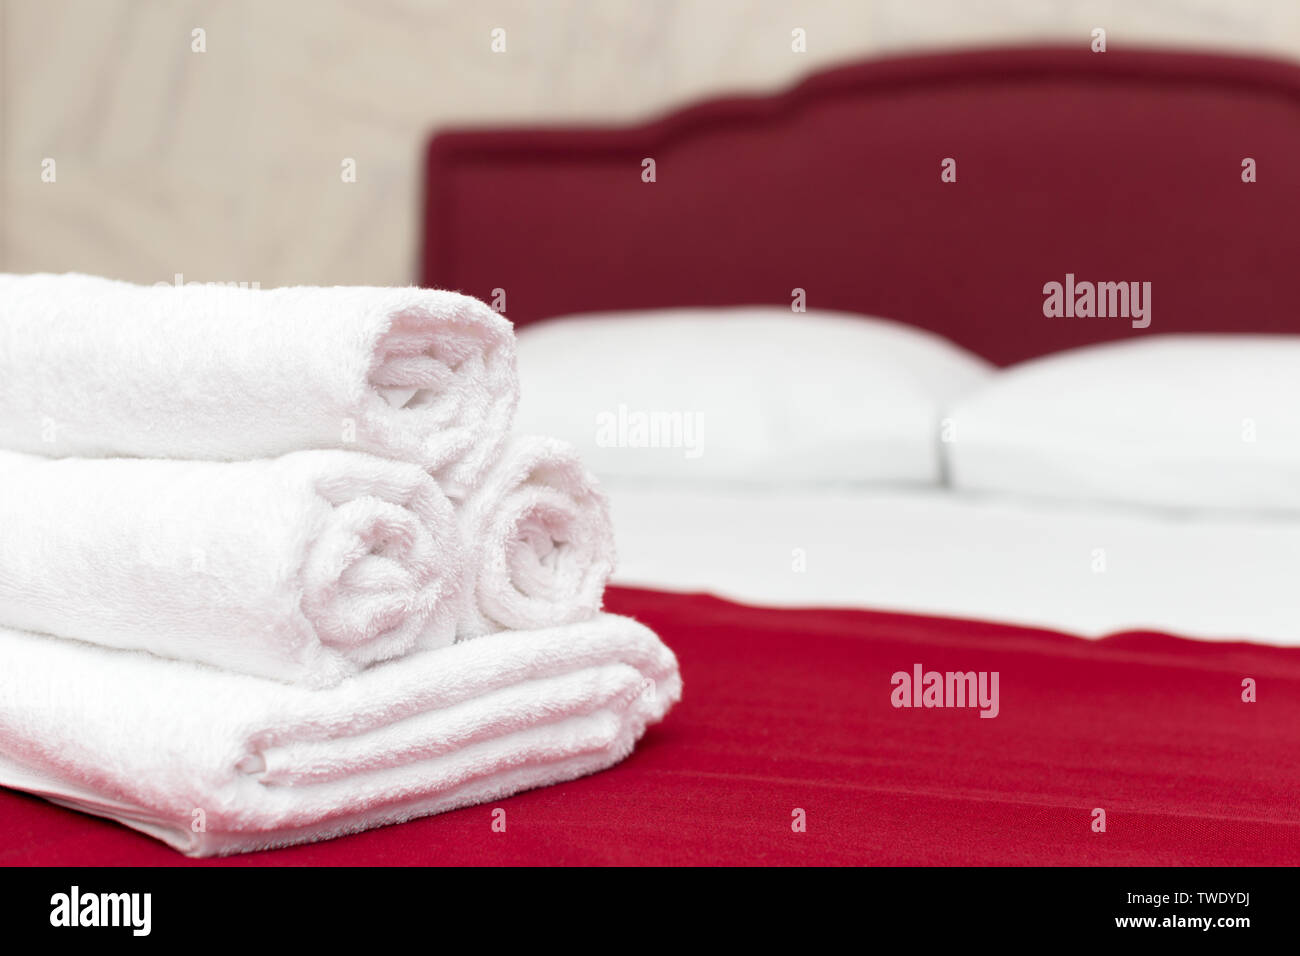 Clean towels on bed at hotel room - Stock Image